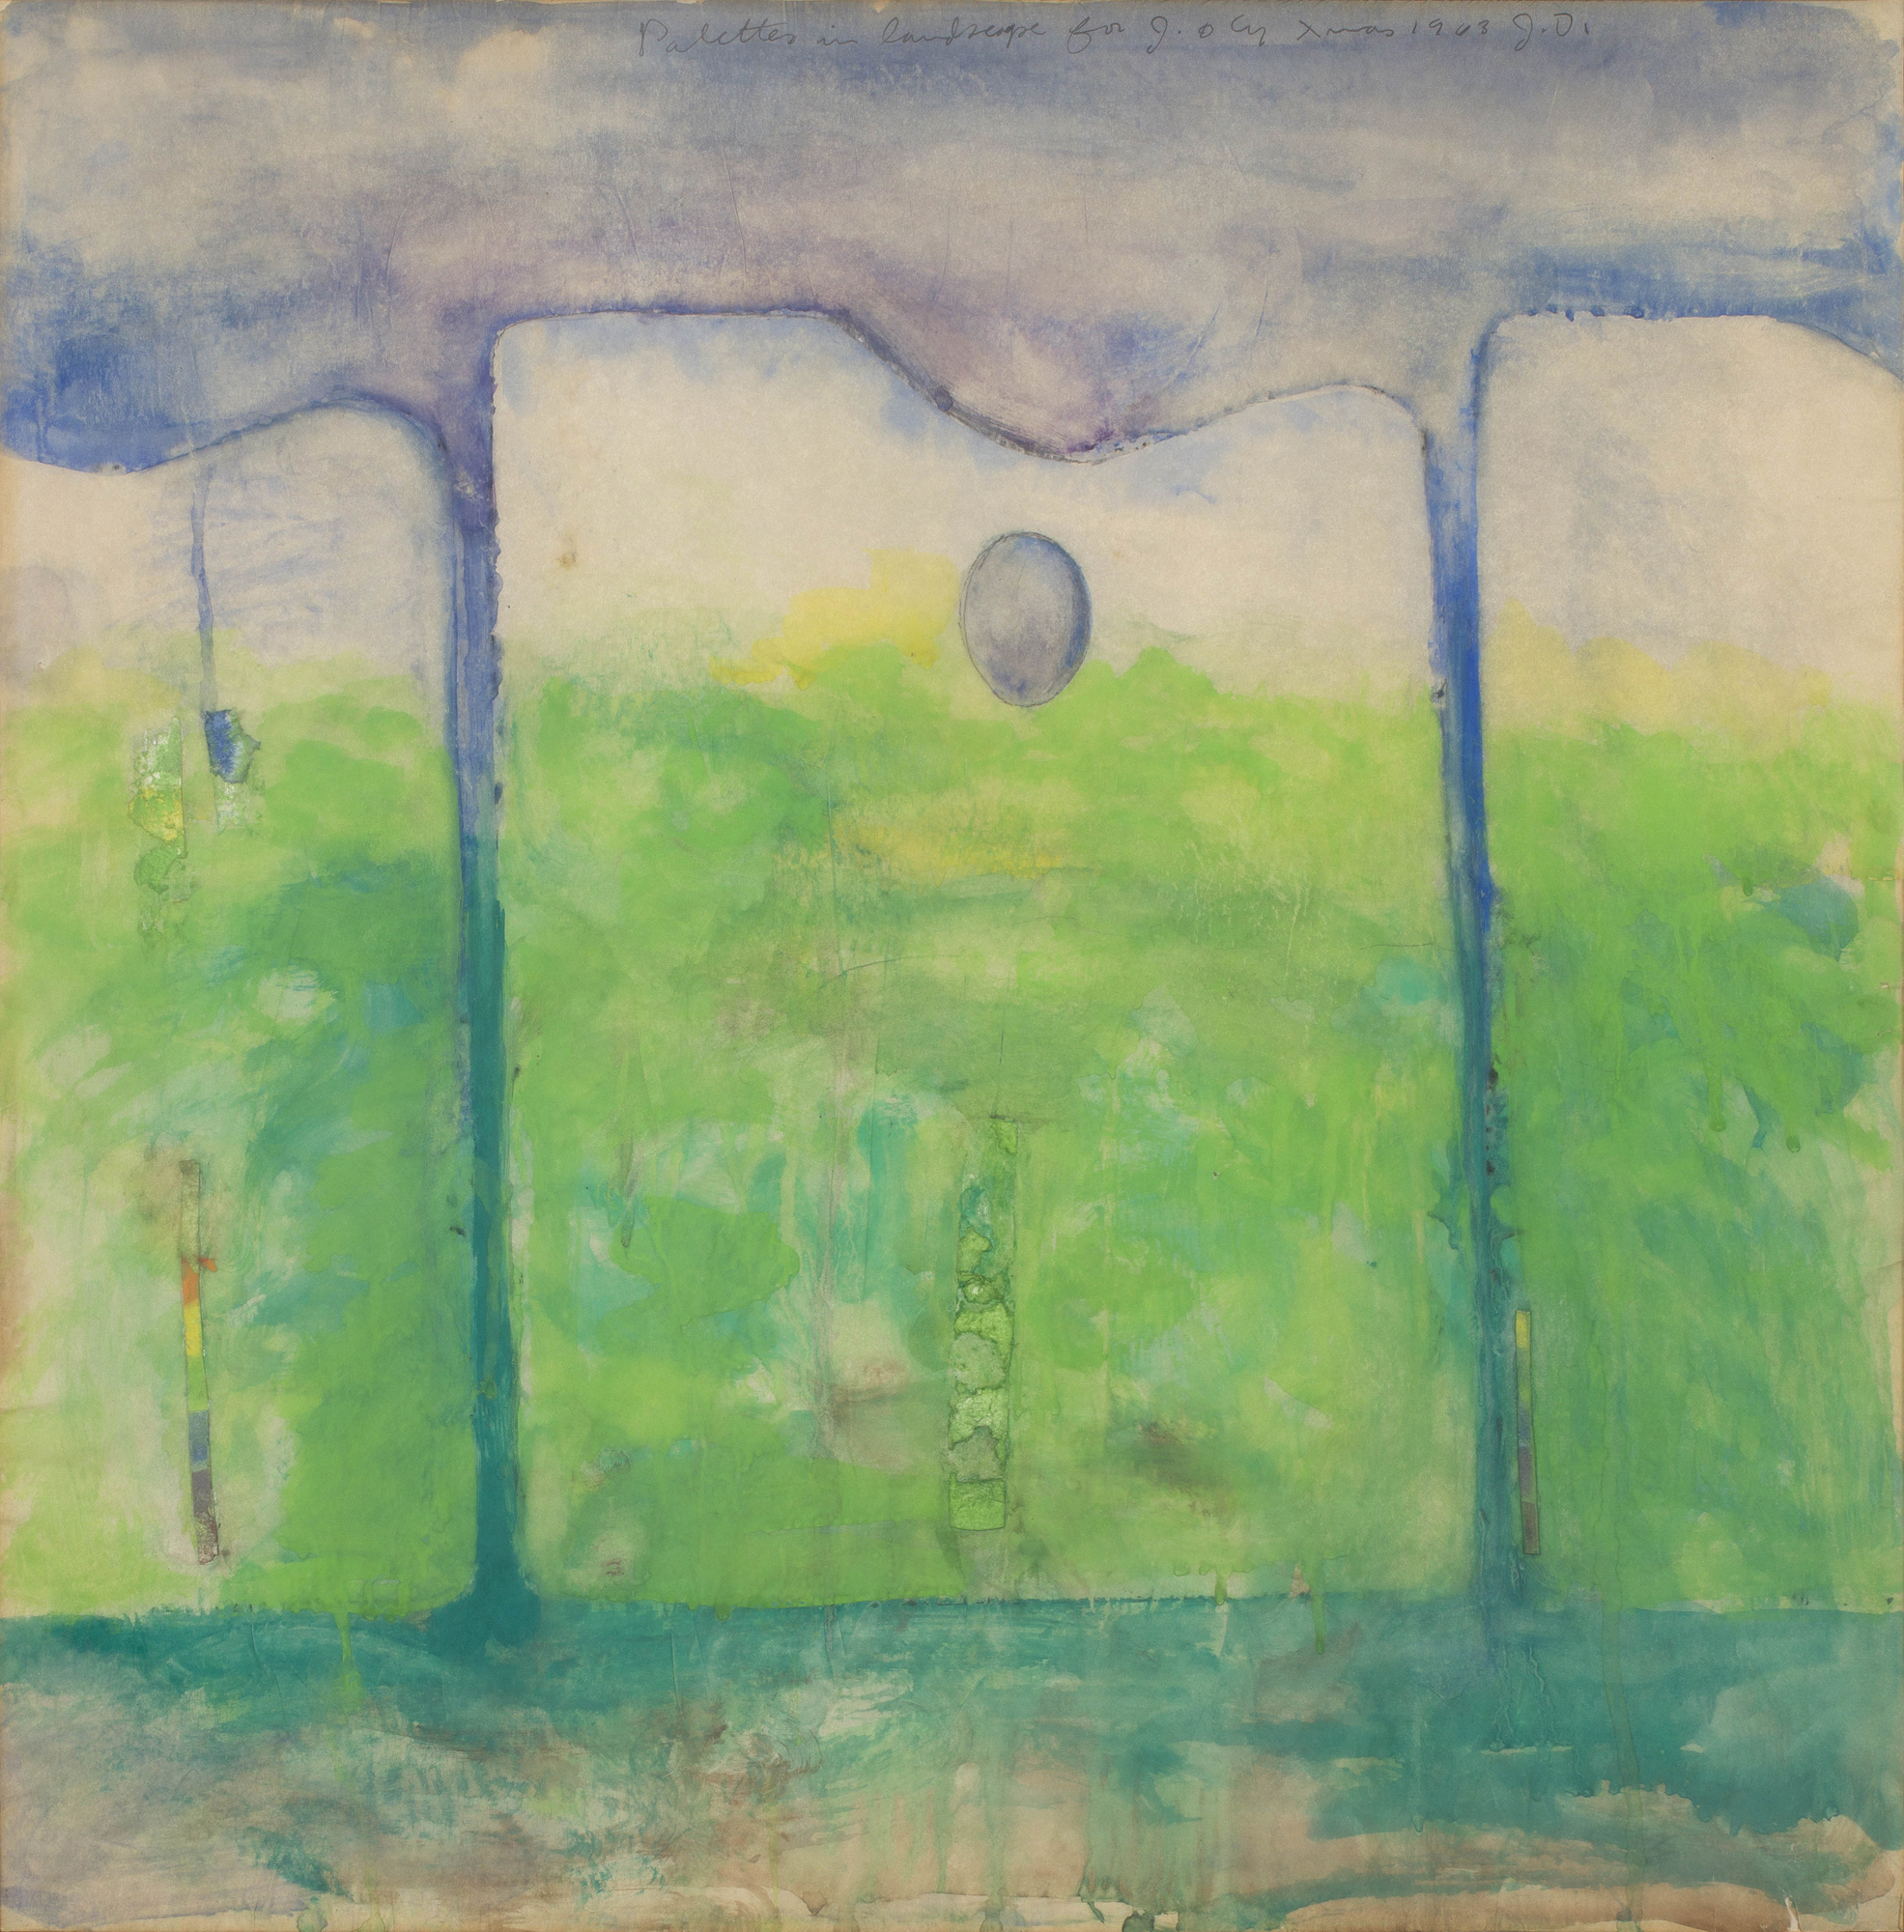 Jim Dine   Palettes in Landscape  1963 Signed with initals, titled, dated and with dedication 'for J. & Cy Xmas 1963' Watercolour, graphite and paper-collage on thin paper 60 x 59 cm